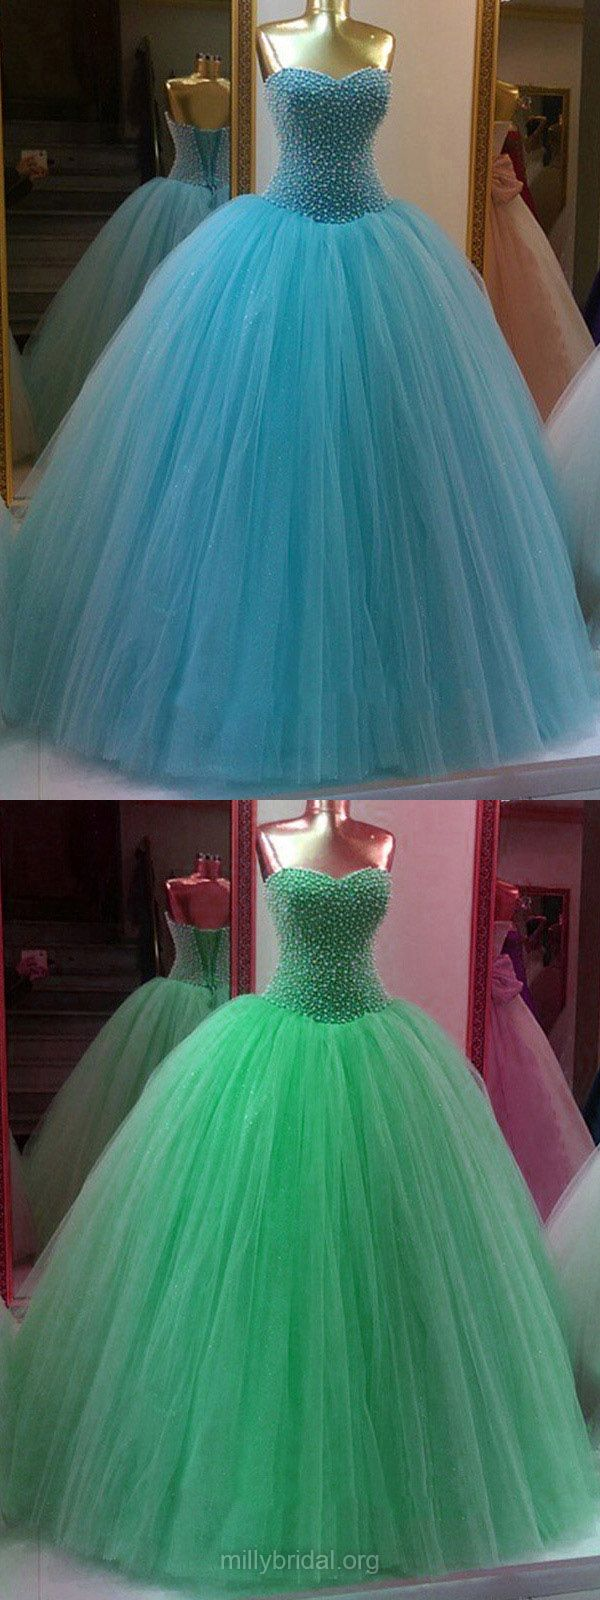 Ball Gown Prom Dresses, Long Prom Dresses, 2018 Prom Dresses Sweetheart, Tulle Prom Dresses Pearl Detailing Lace-up, Modest Prom Dresses for Girls #promgowns